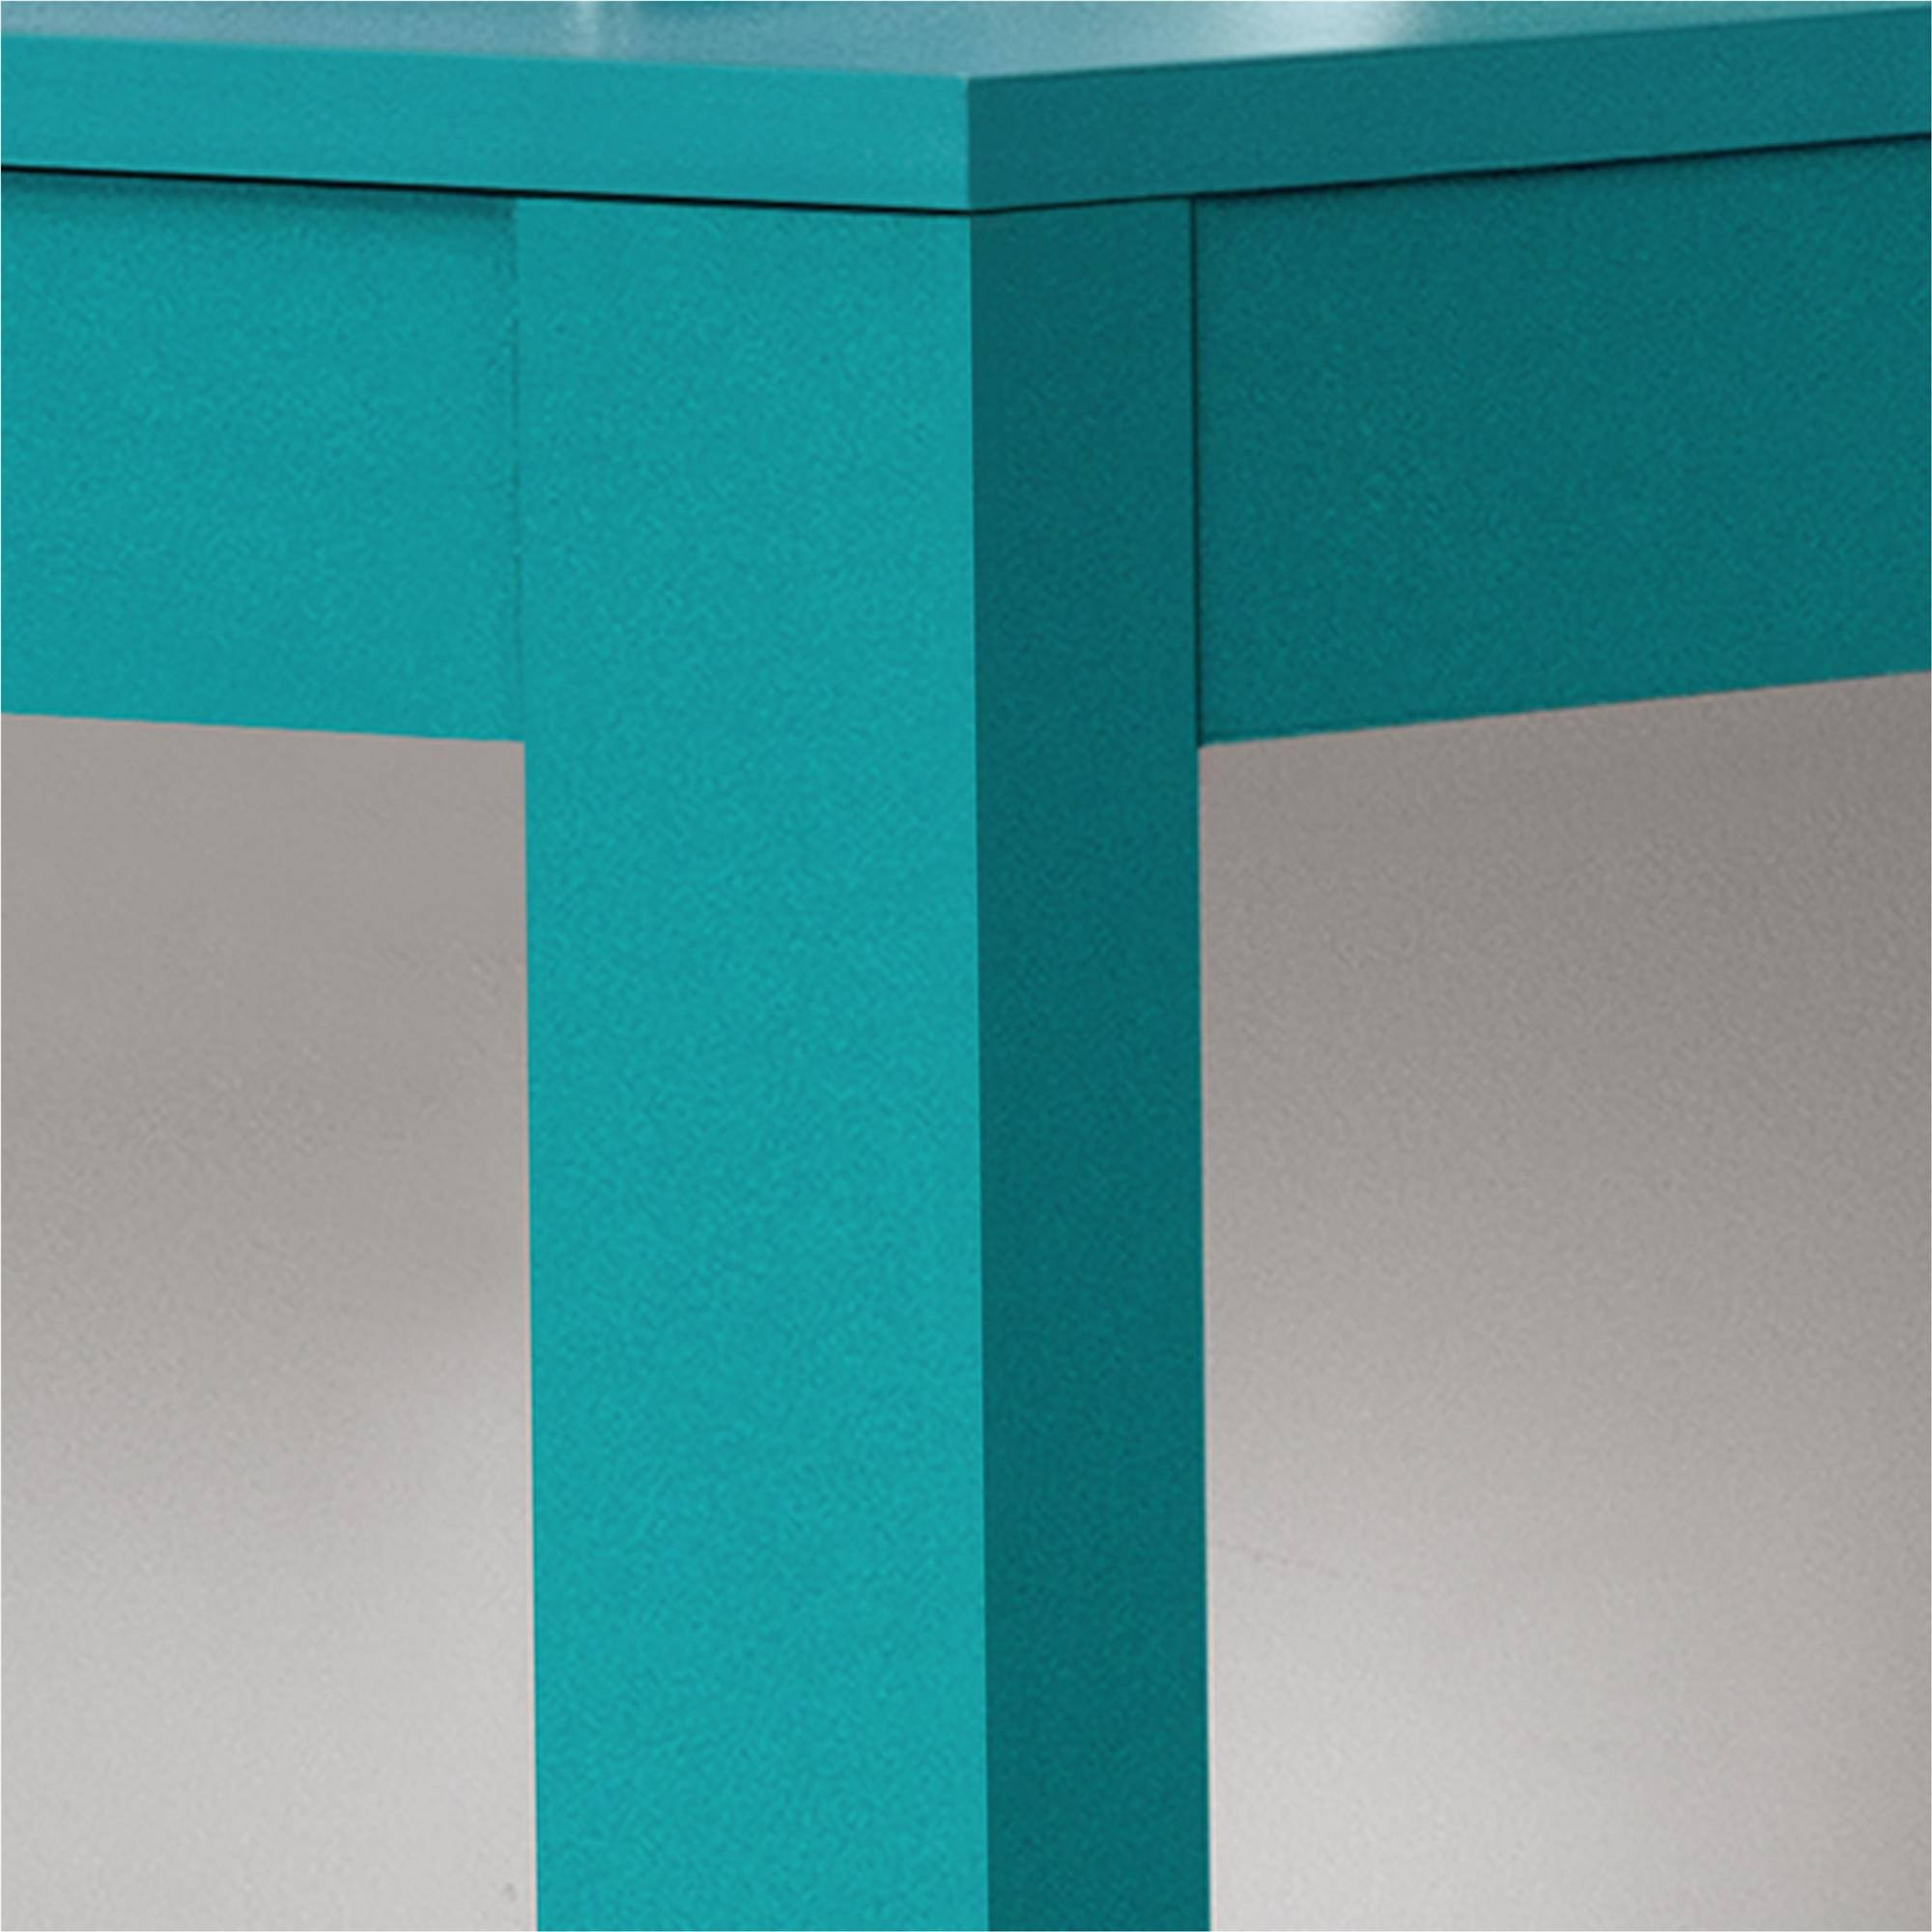 NEW Parsons Desk with Drawer, Multiple Colors (Teal)